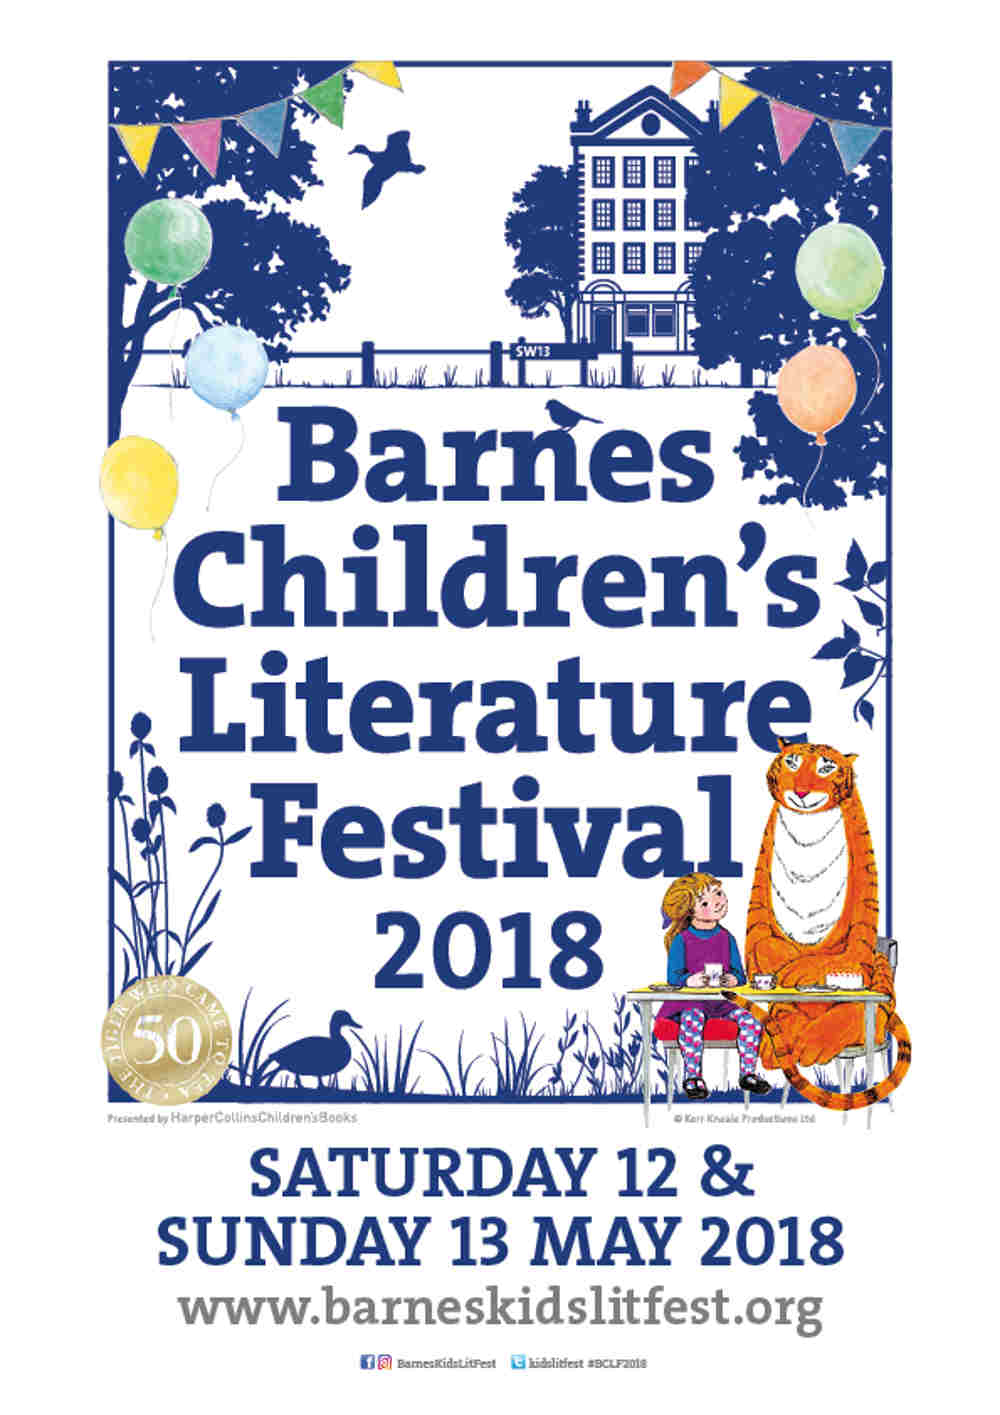 Barnes, Kids, Children, Literature, Festival